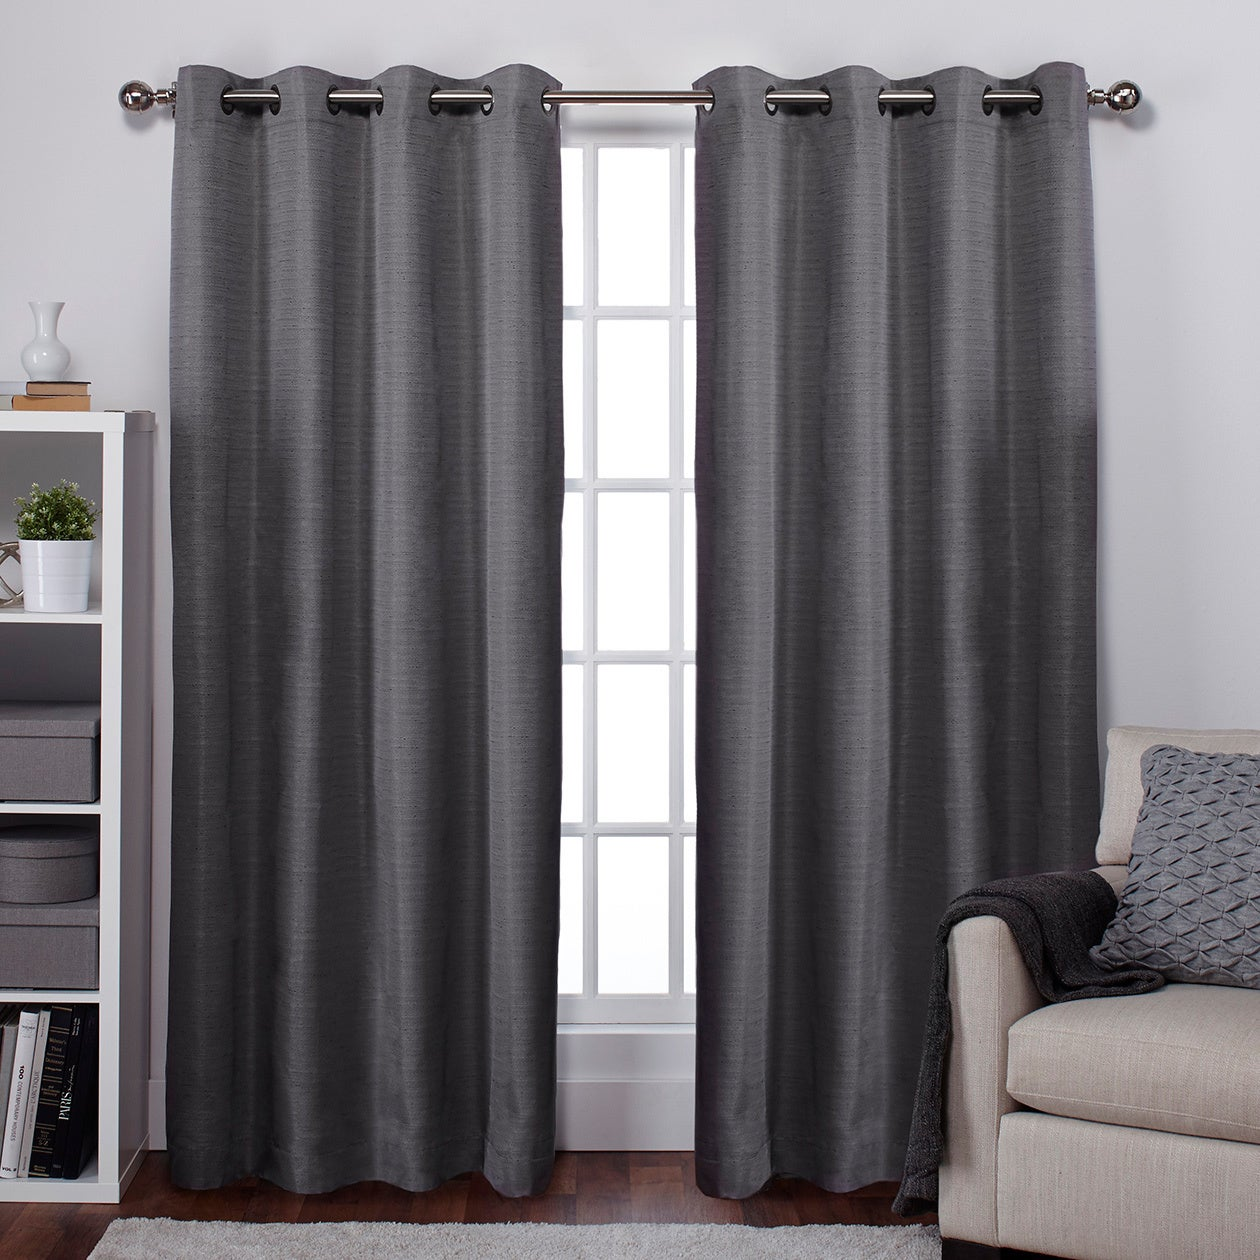 ATI Home Raw Silk Thermal Insulated Grommet Top Curtain P...